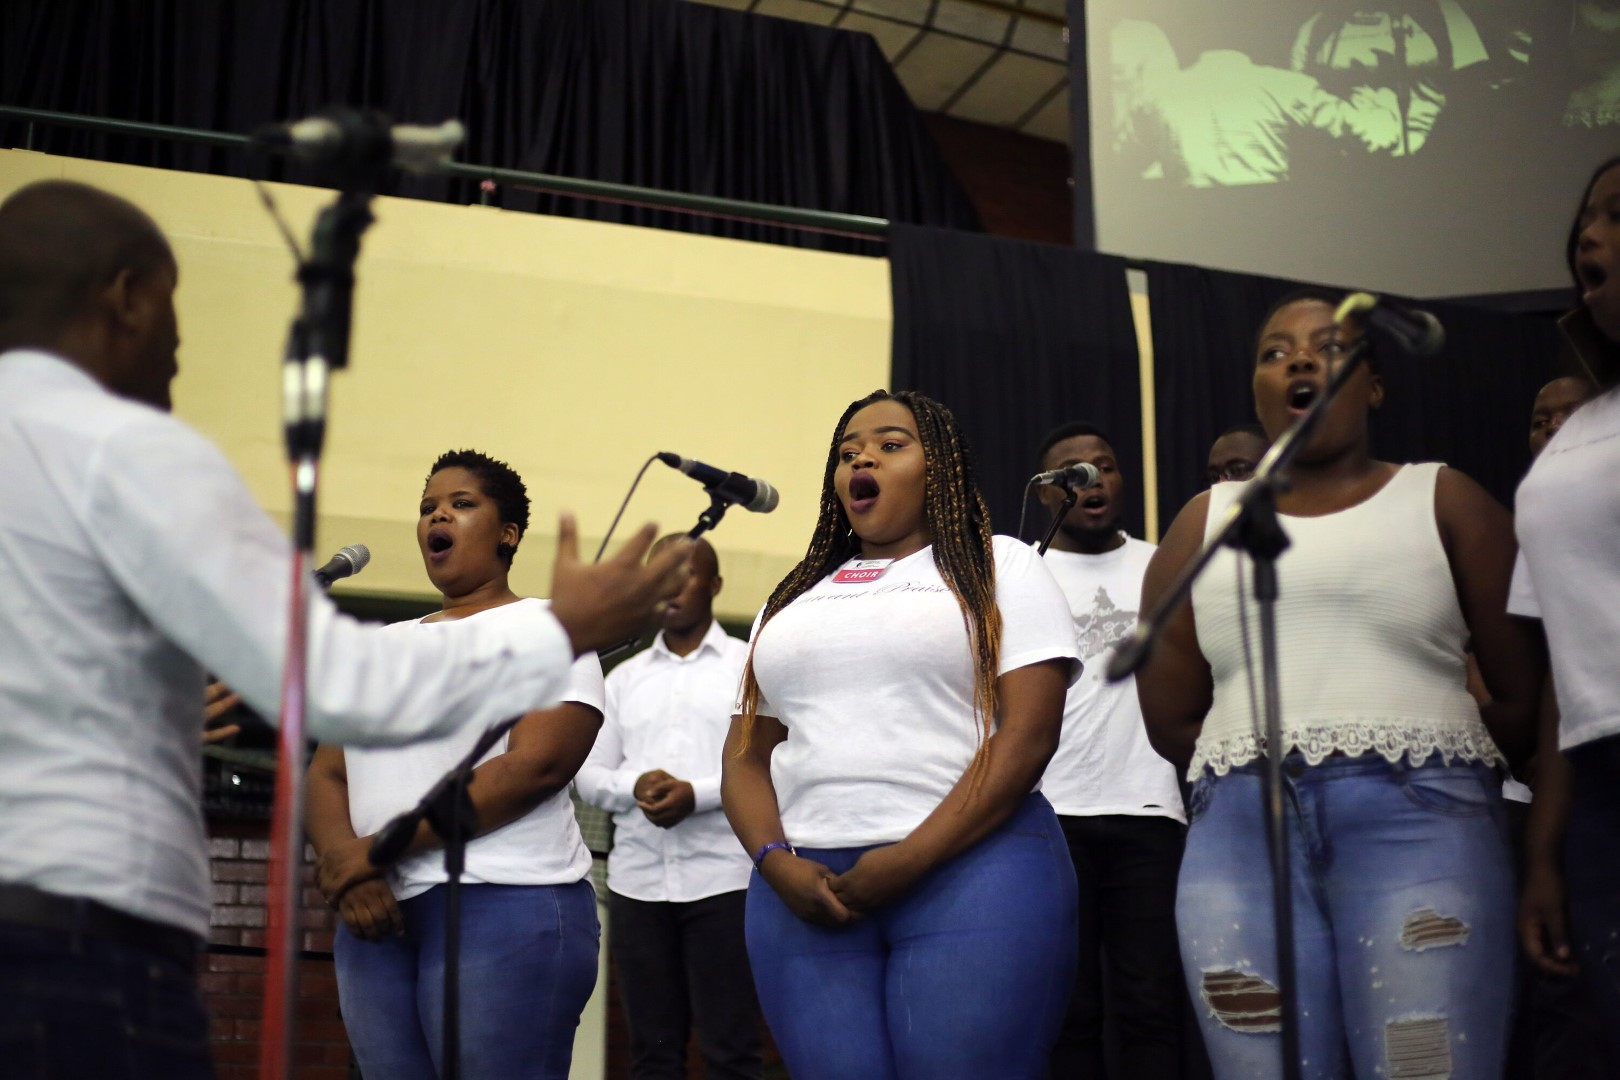 The UKZN choir at its best